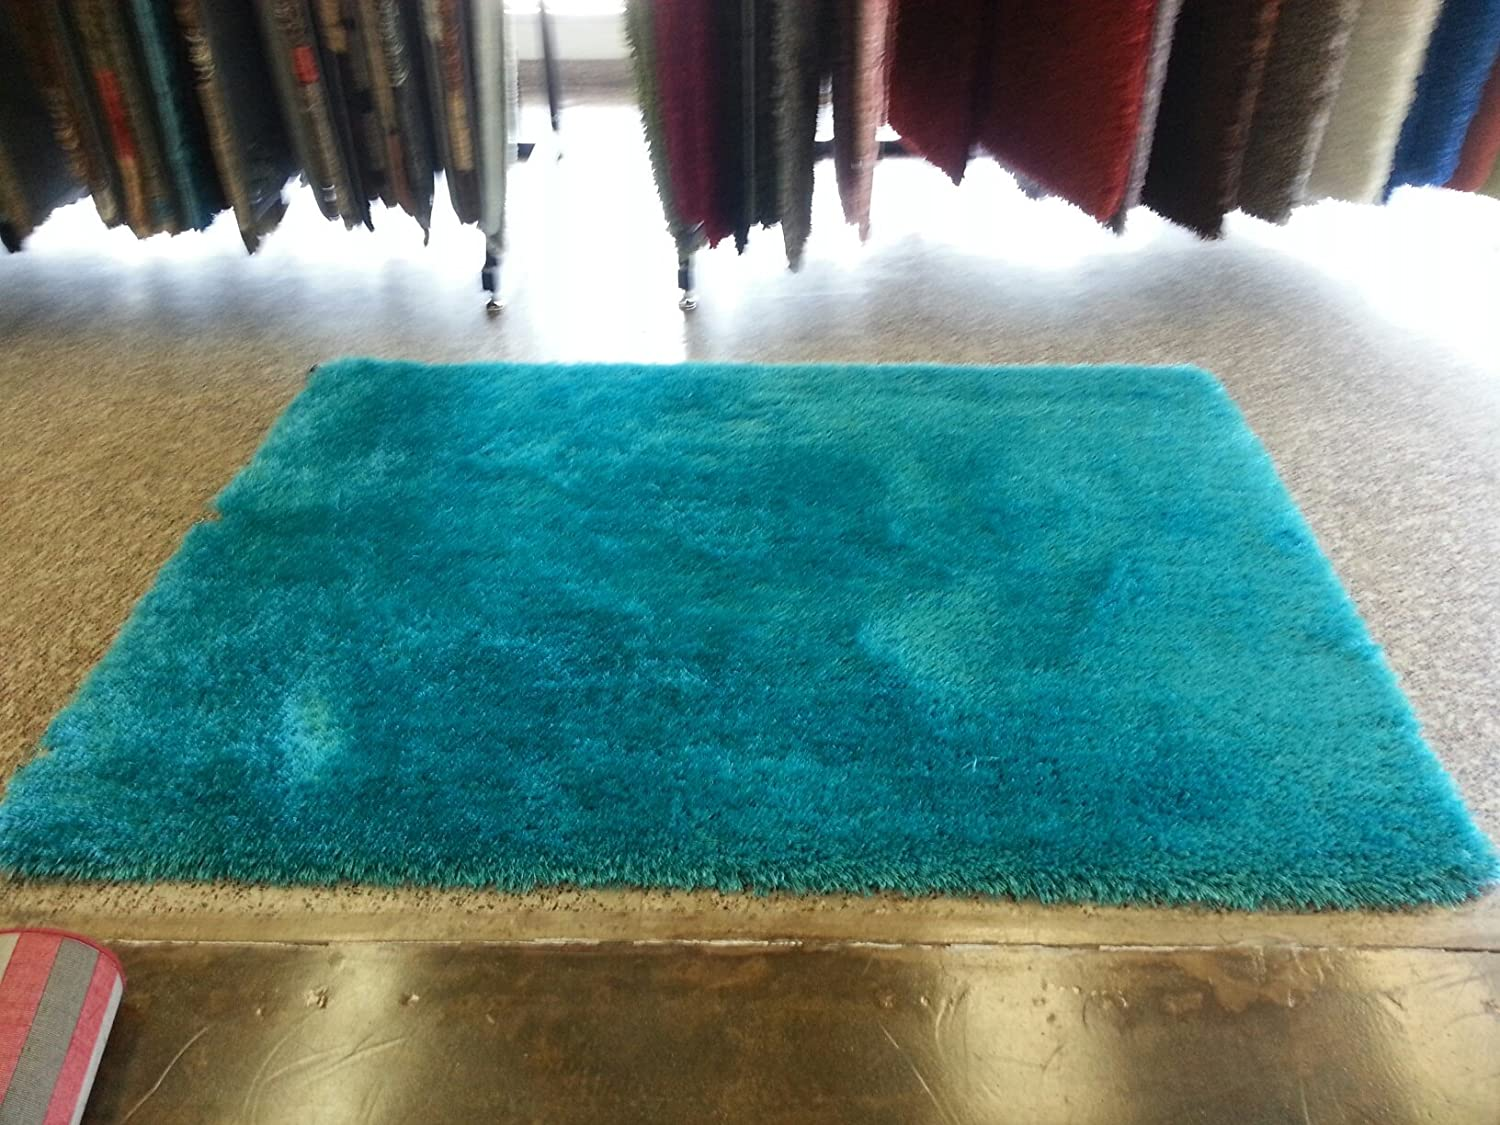 Amazon.com: Shaggy Viscose Solid Collection, Turquoise Solid Area ...